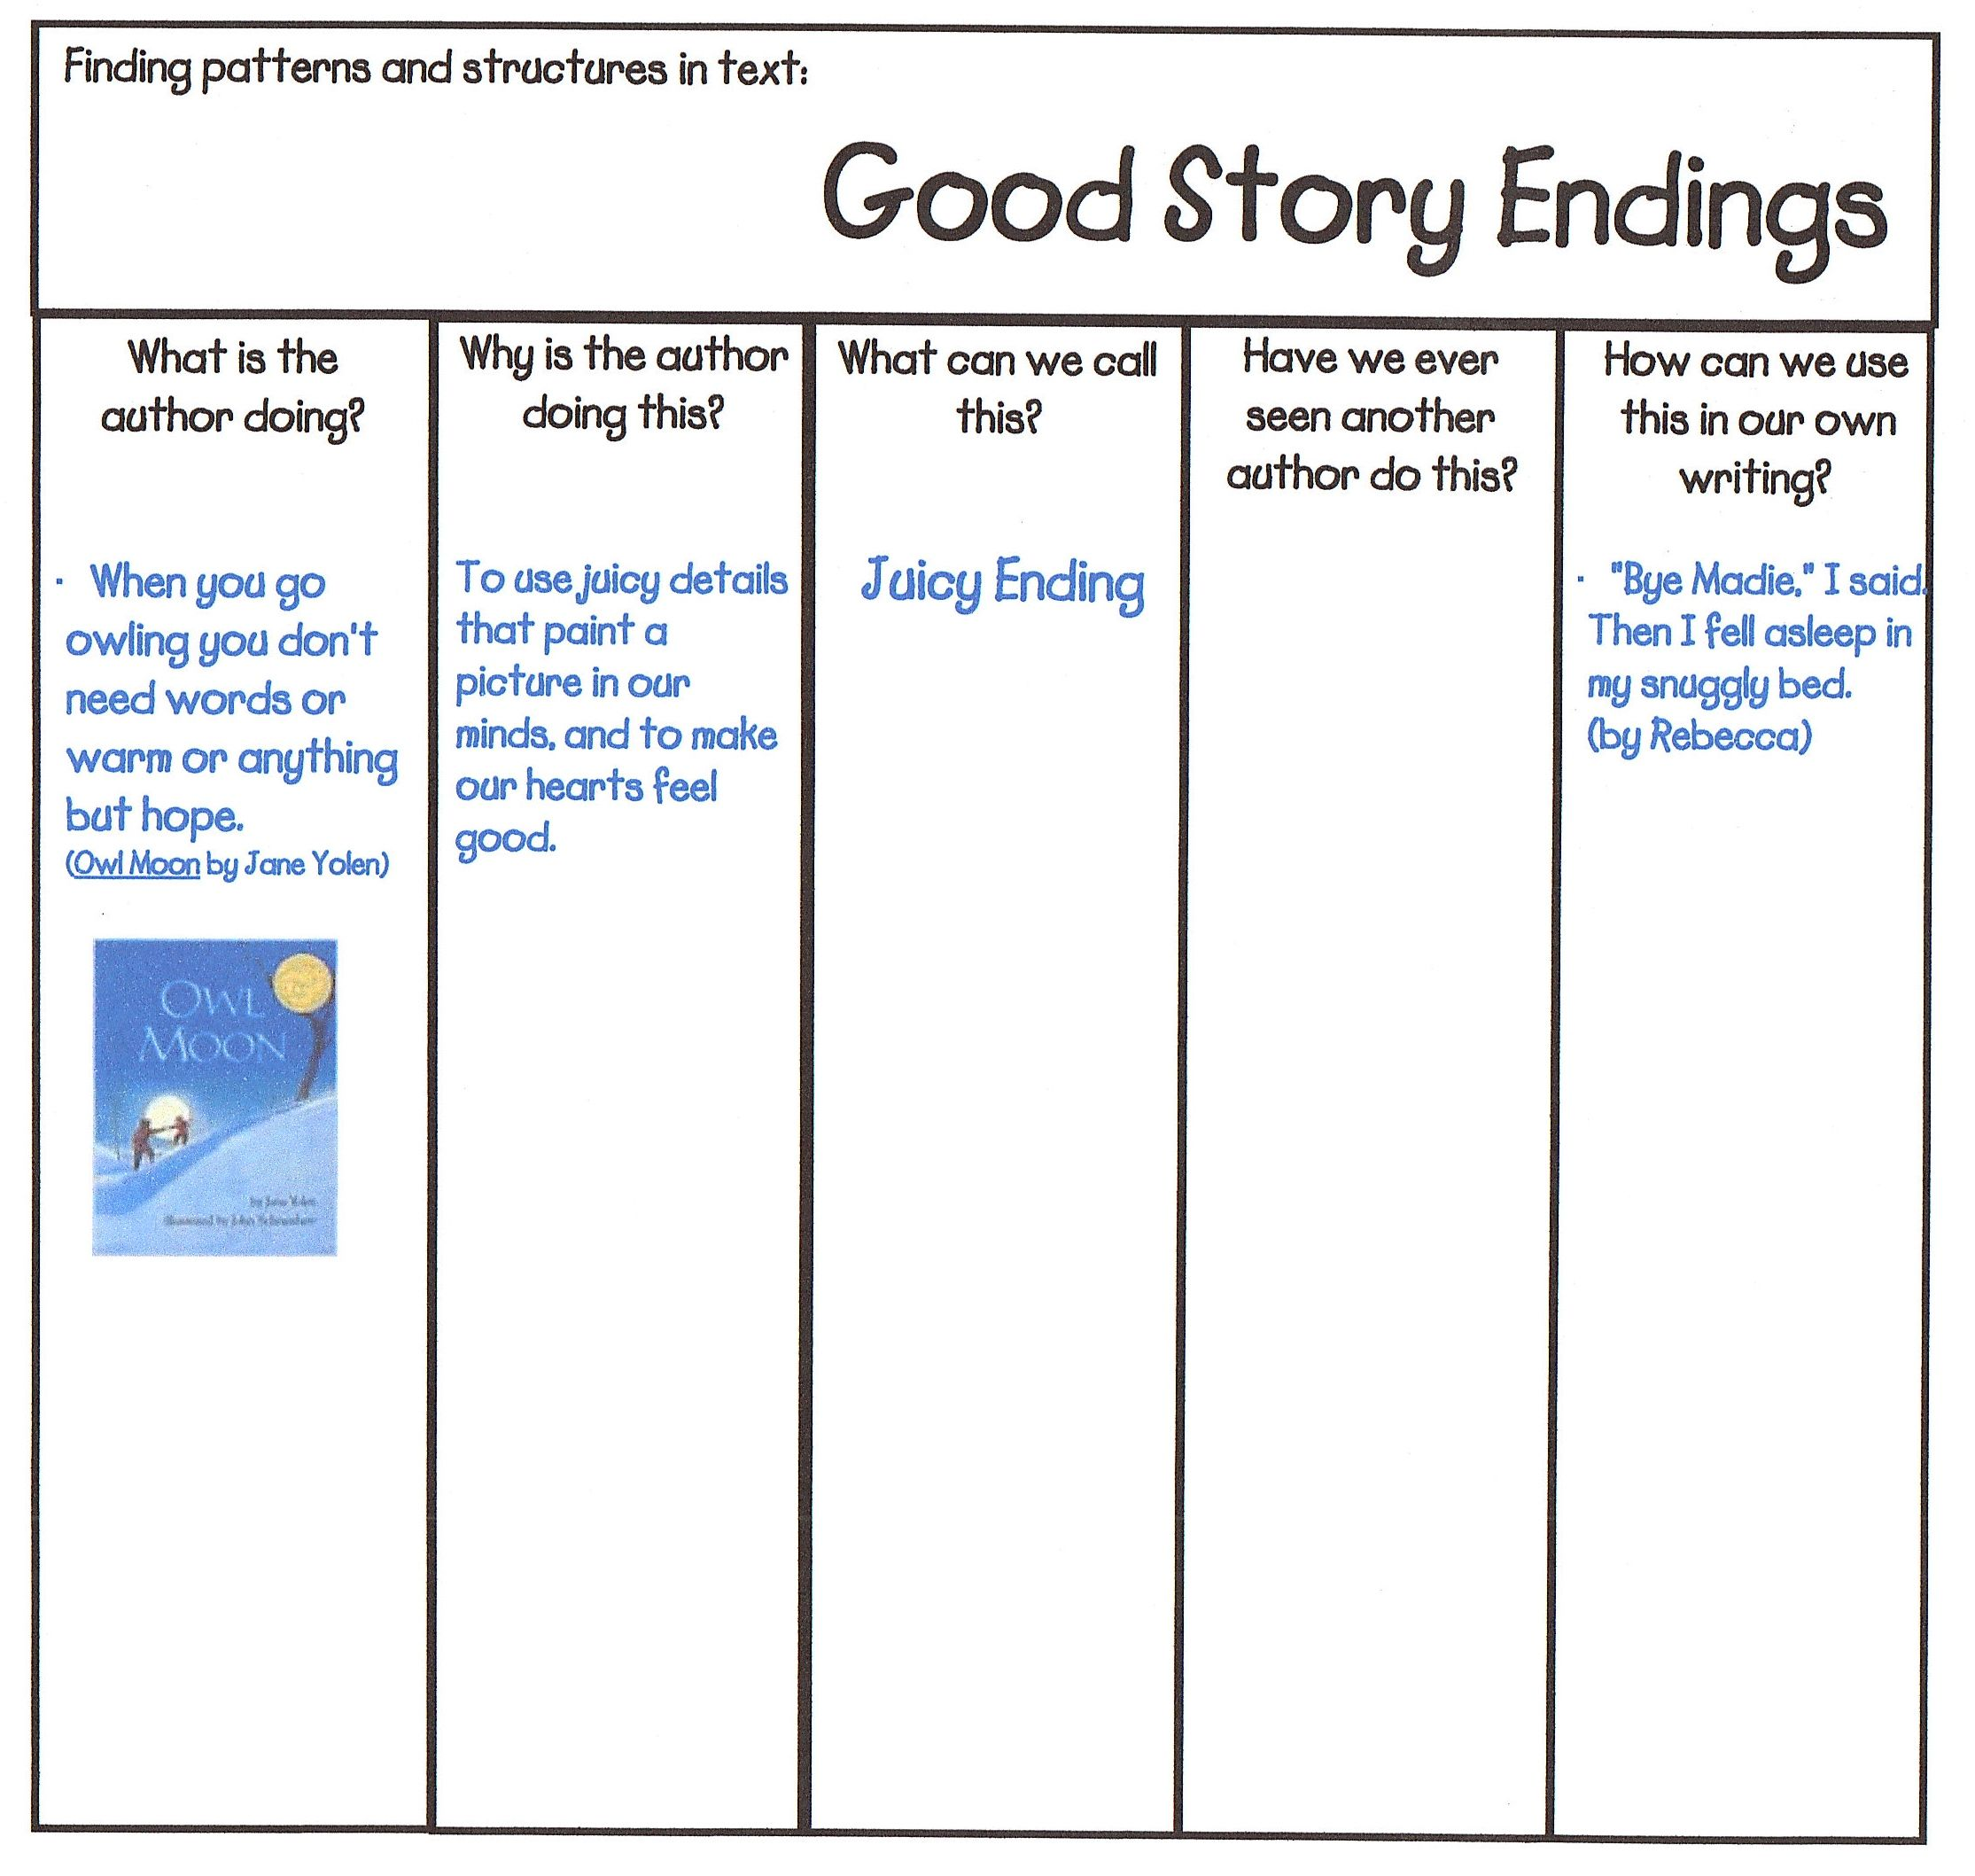 Good Story Endings